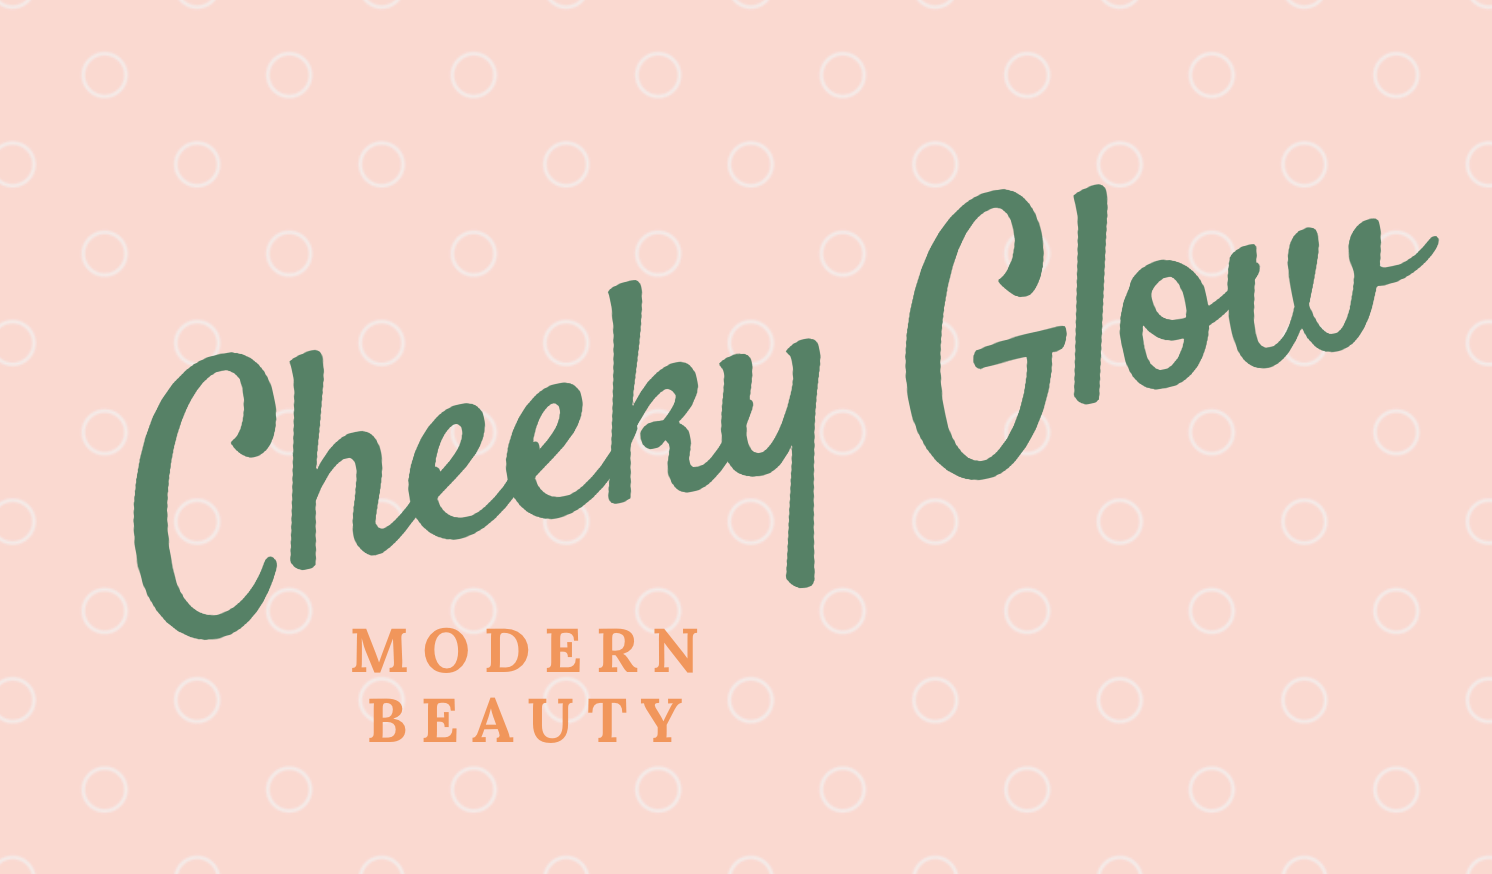 Free logo made with Canva Logo Maker - Cheeky Glow Modern Beauty